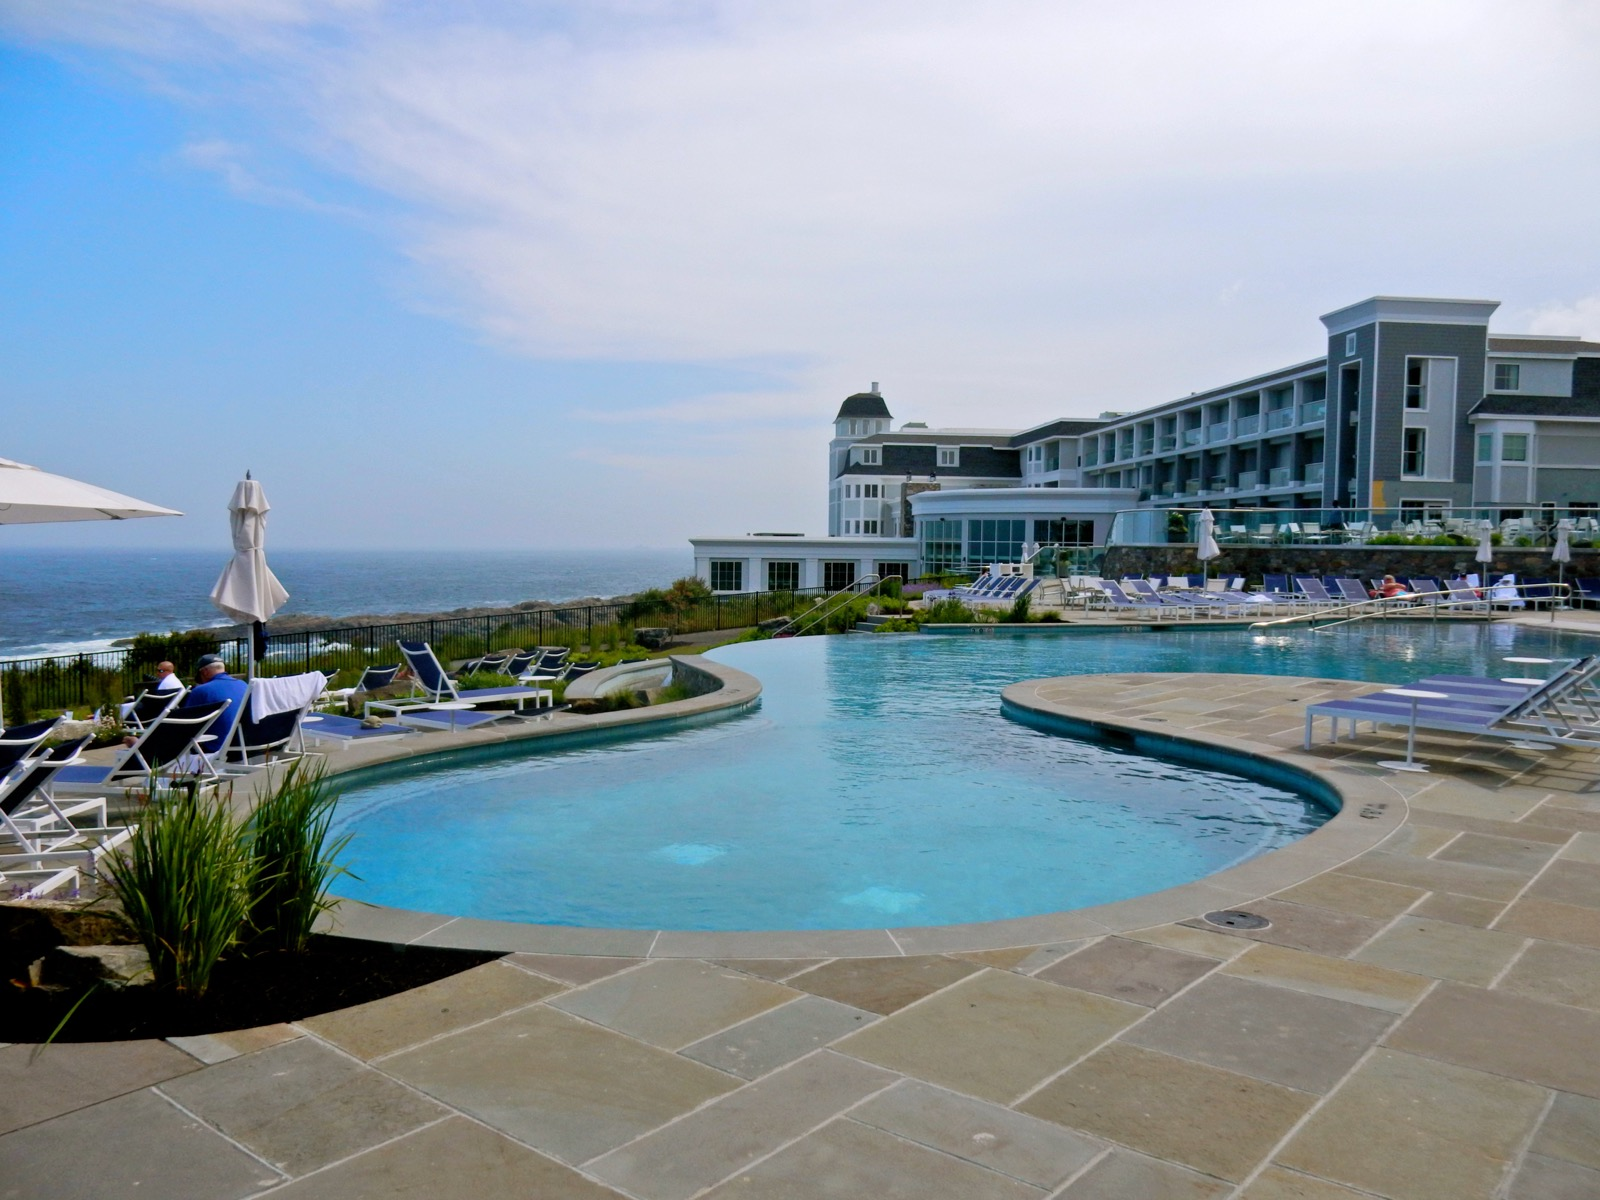 Cliff House pool